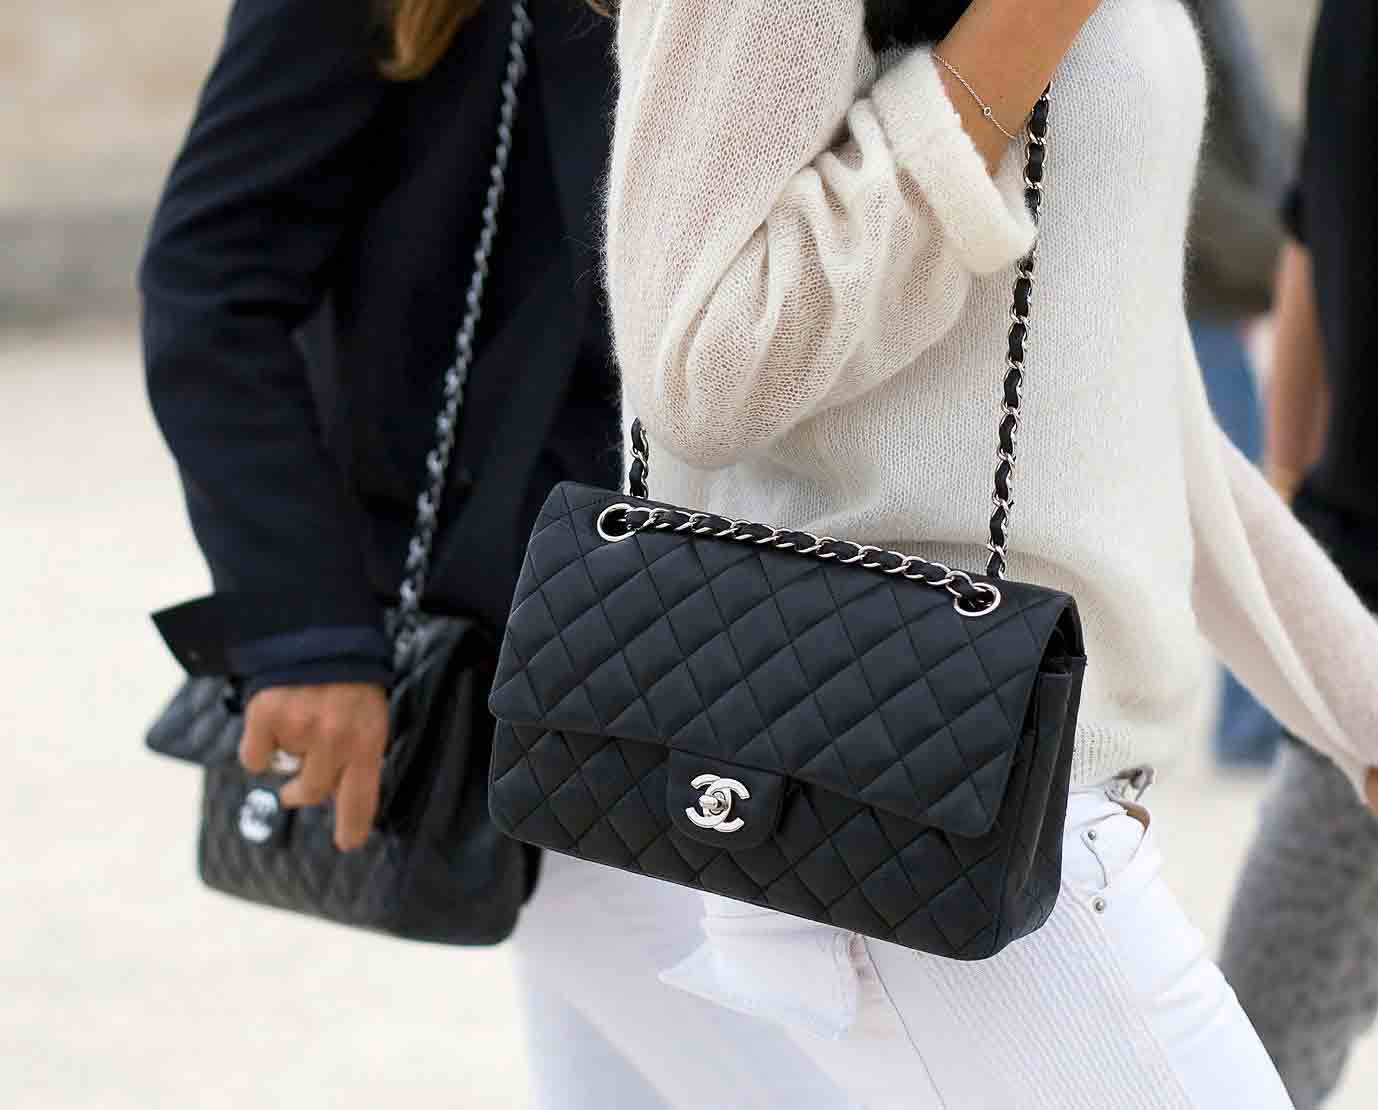 How-to-style-handbags-with-an-outfit-03